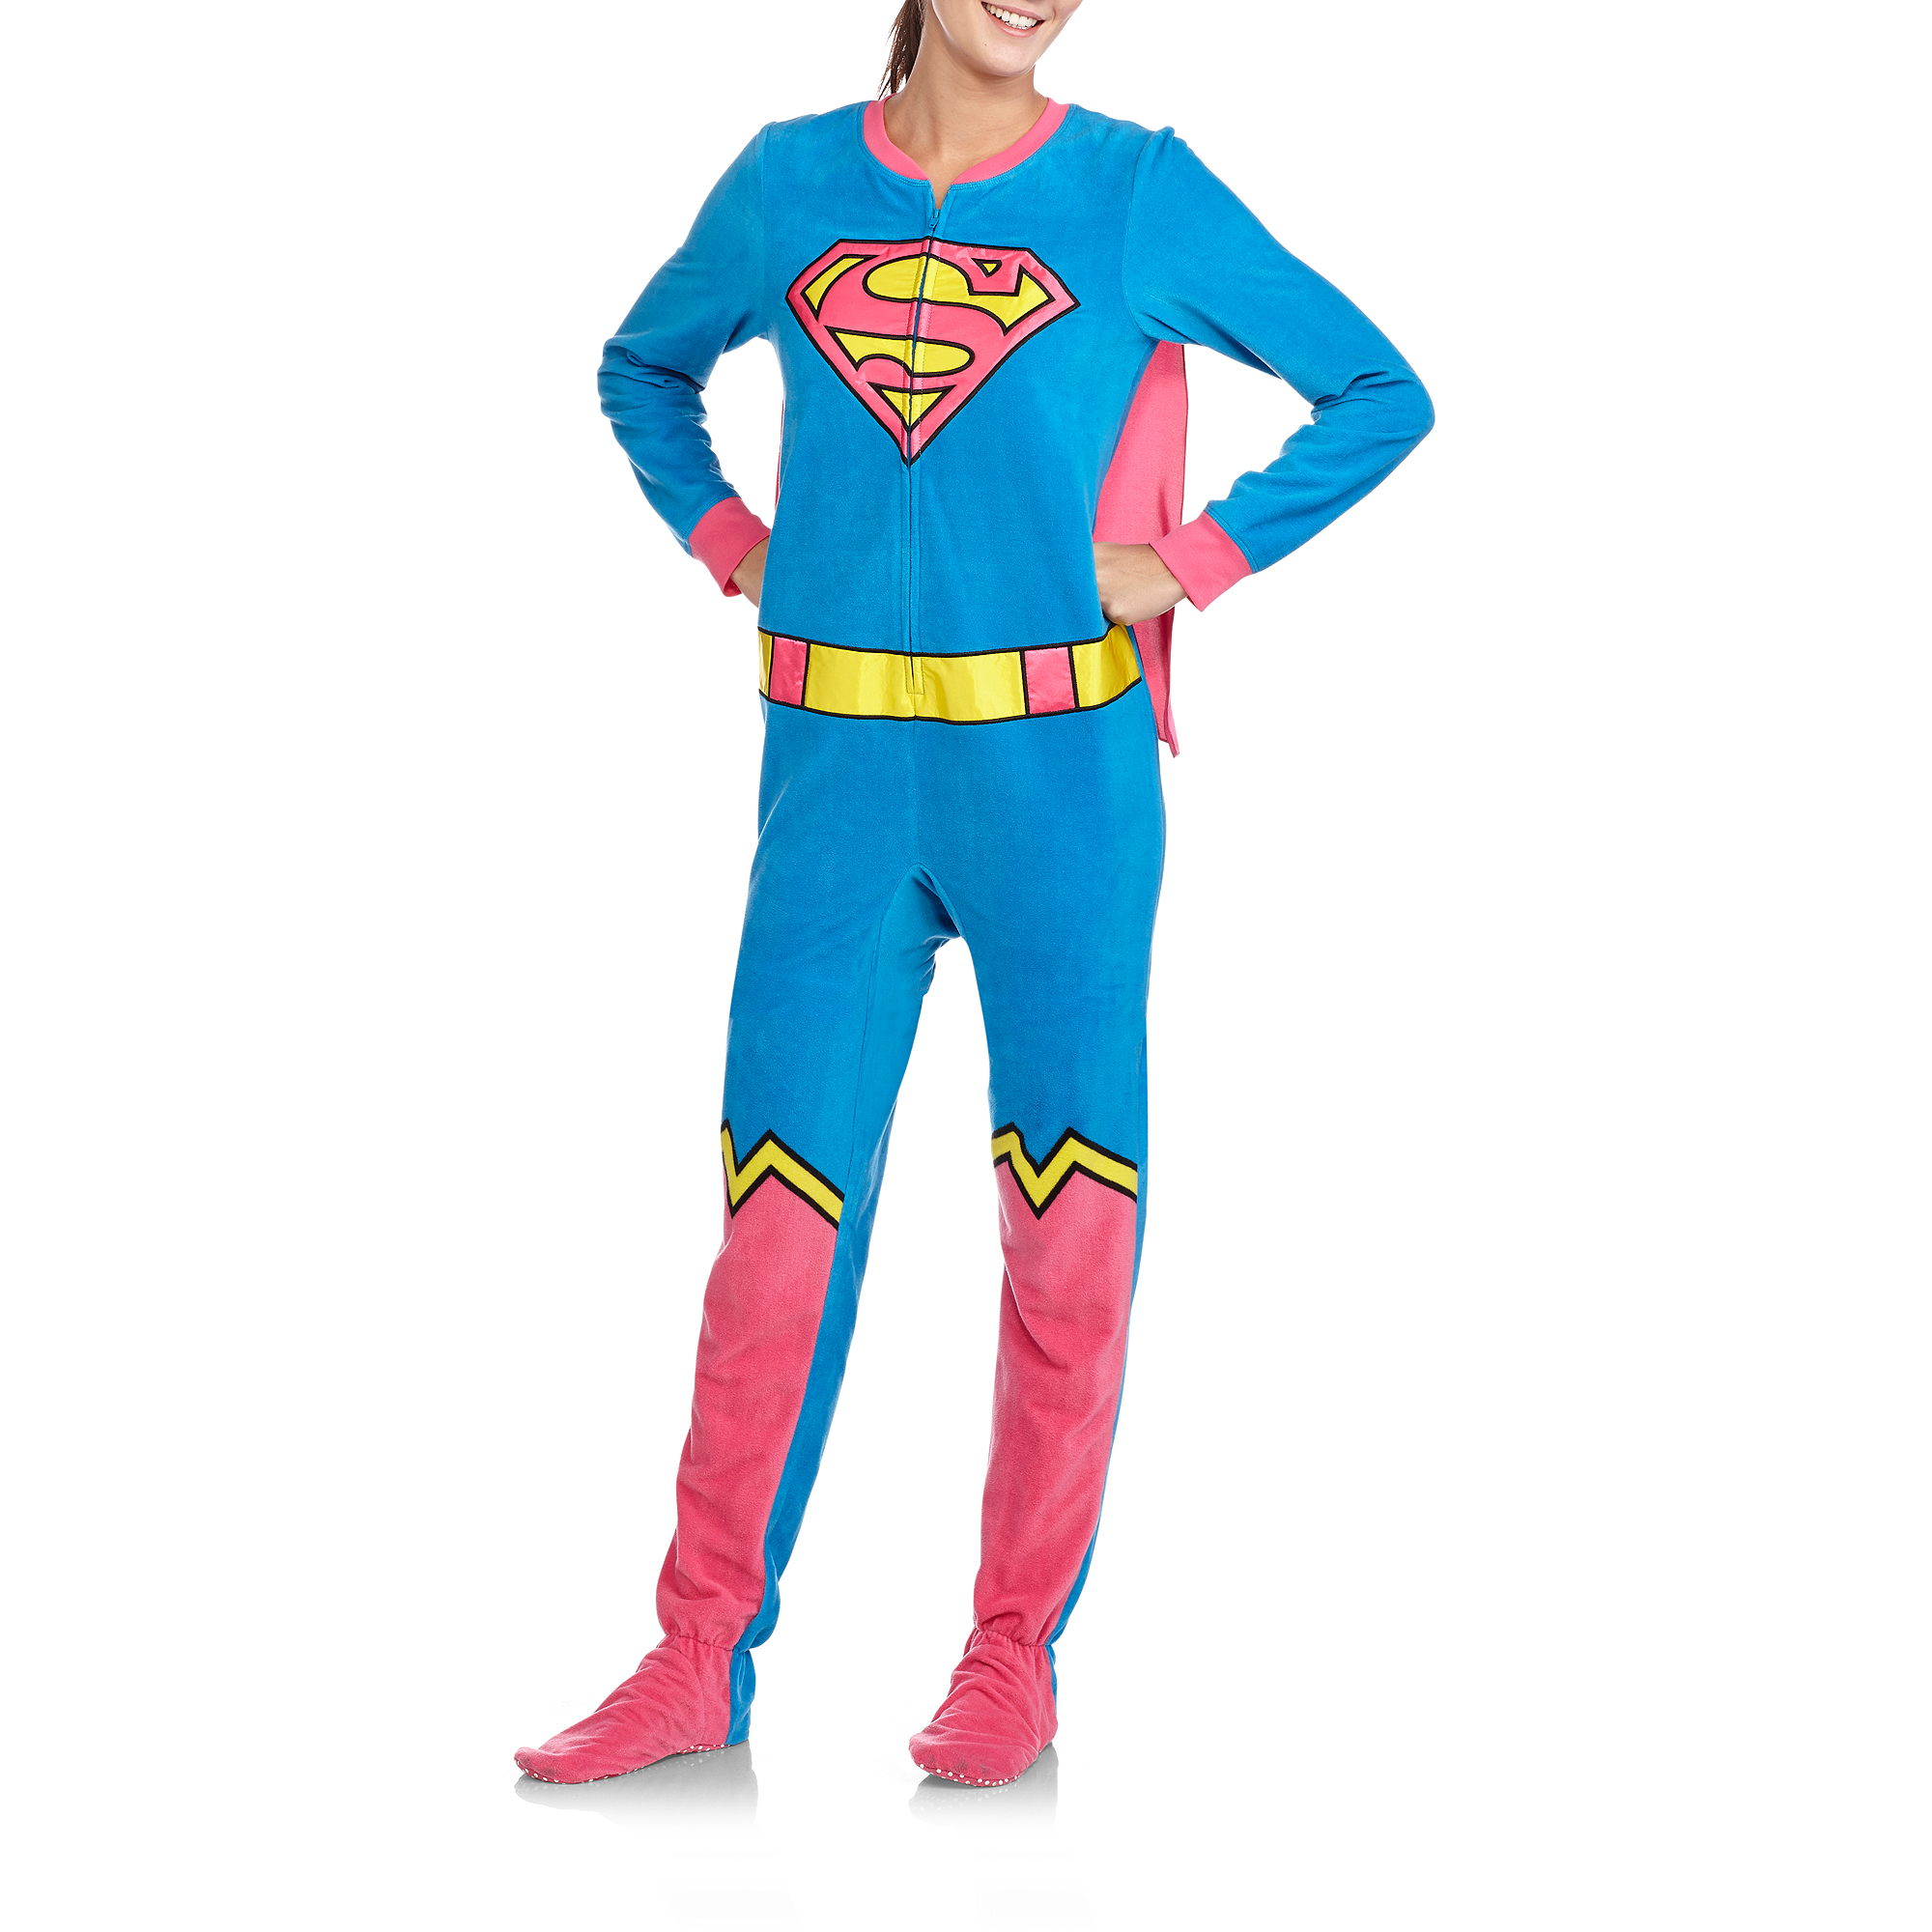 Juniors Supergirl One Piece Footed Pajamas with Cape - Walmart.com